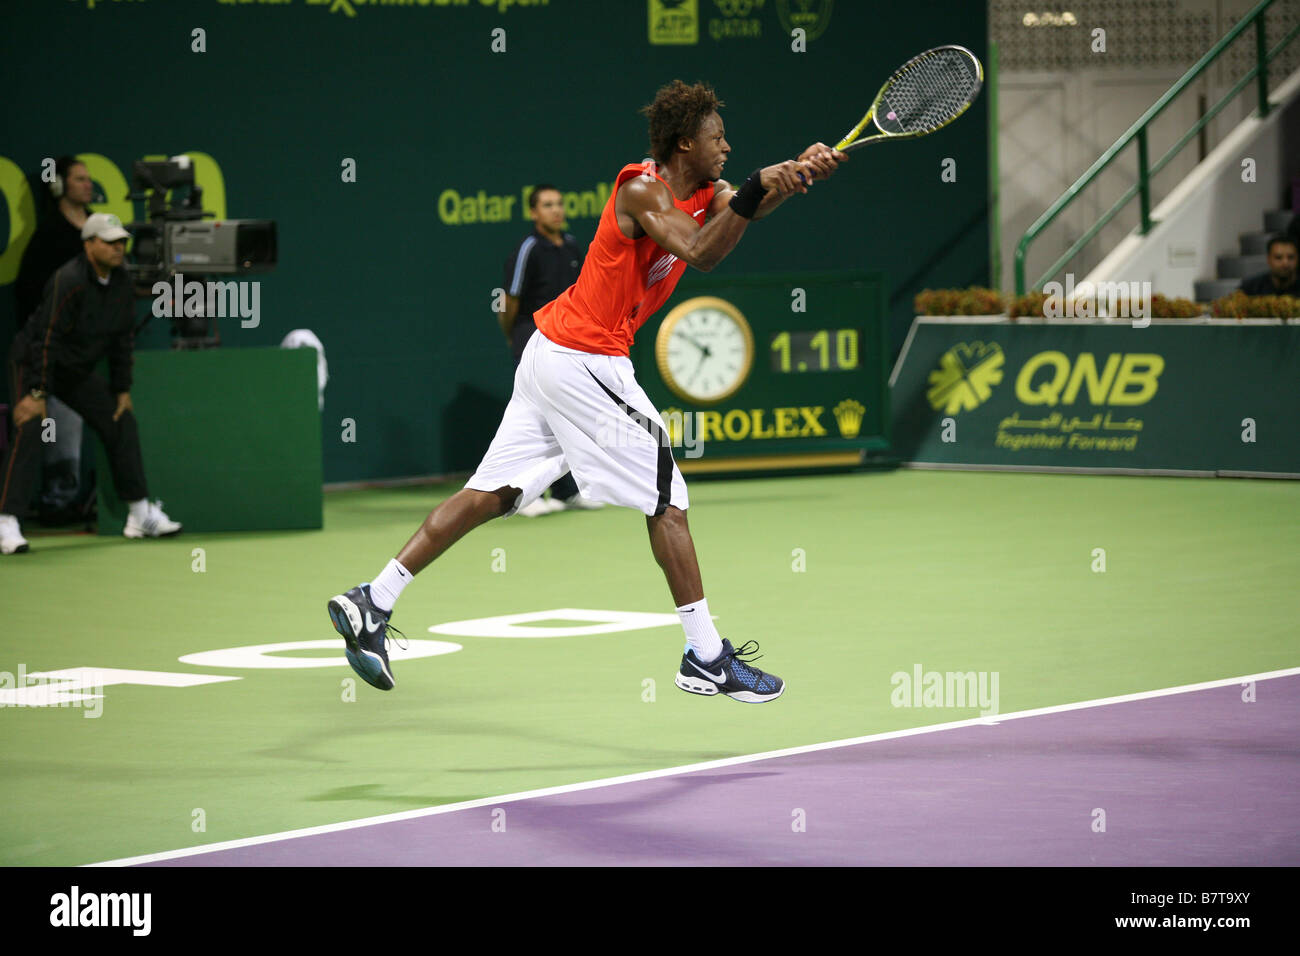 Gael Monfils appears to walk on air during his victory over world No 1 Rafael Nadal at the Qatar Open Doha Jan 8 - Stock Image